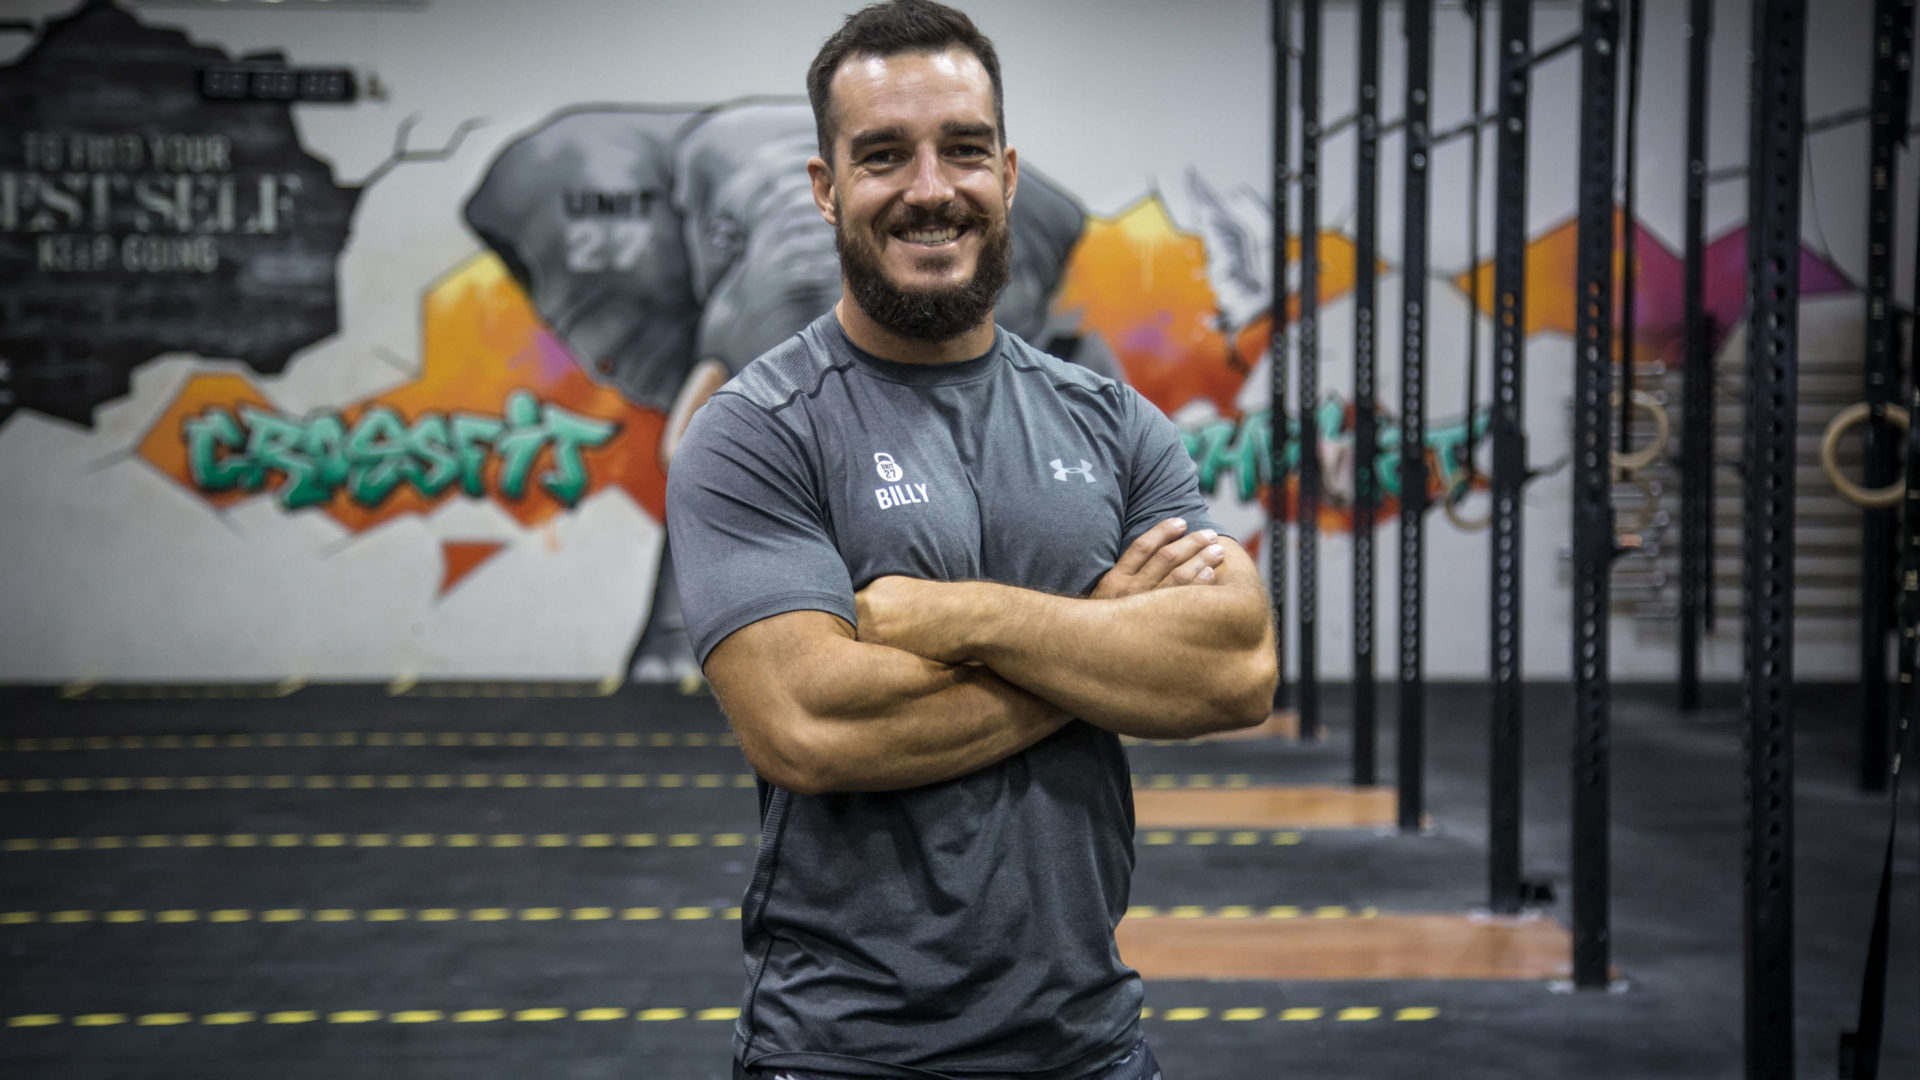 Billy Pullen – CrossFit Instructor